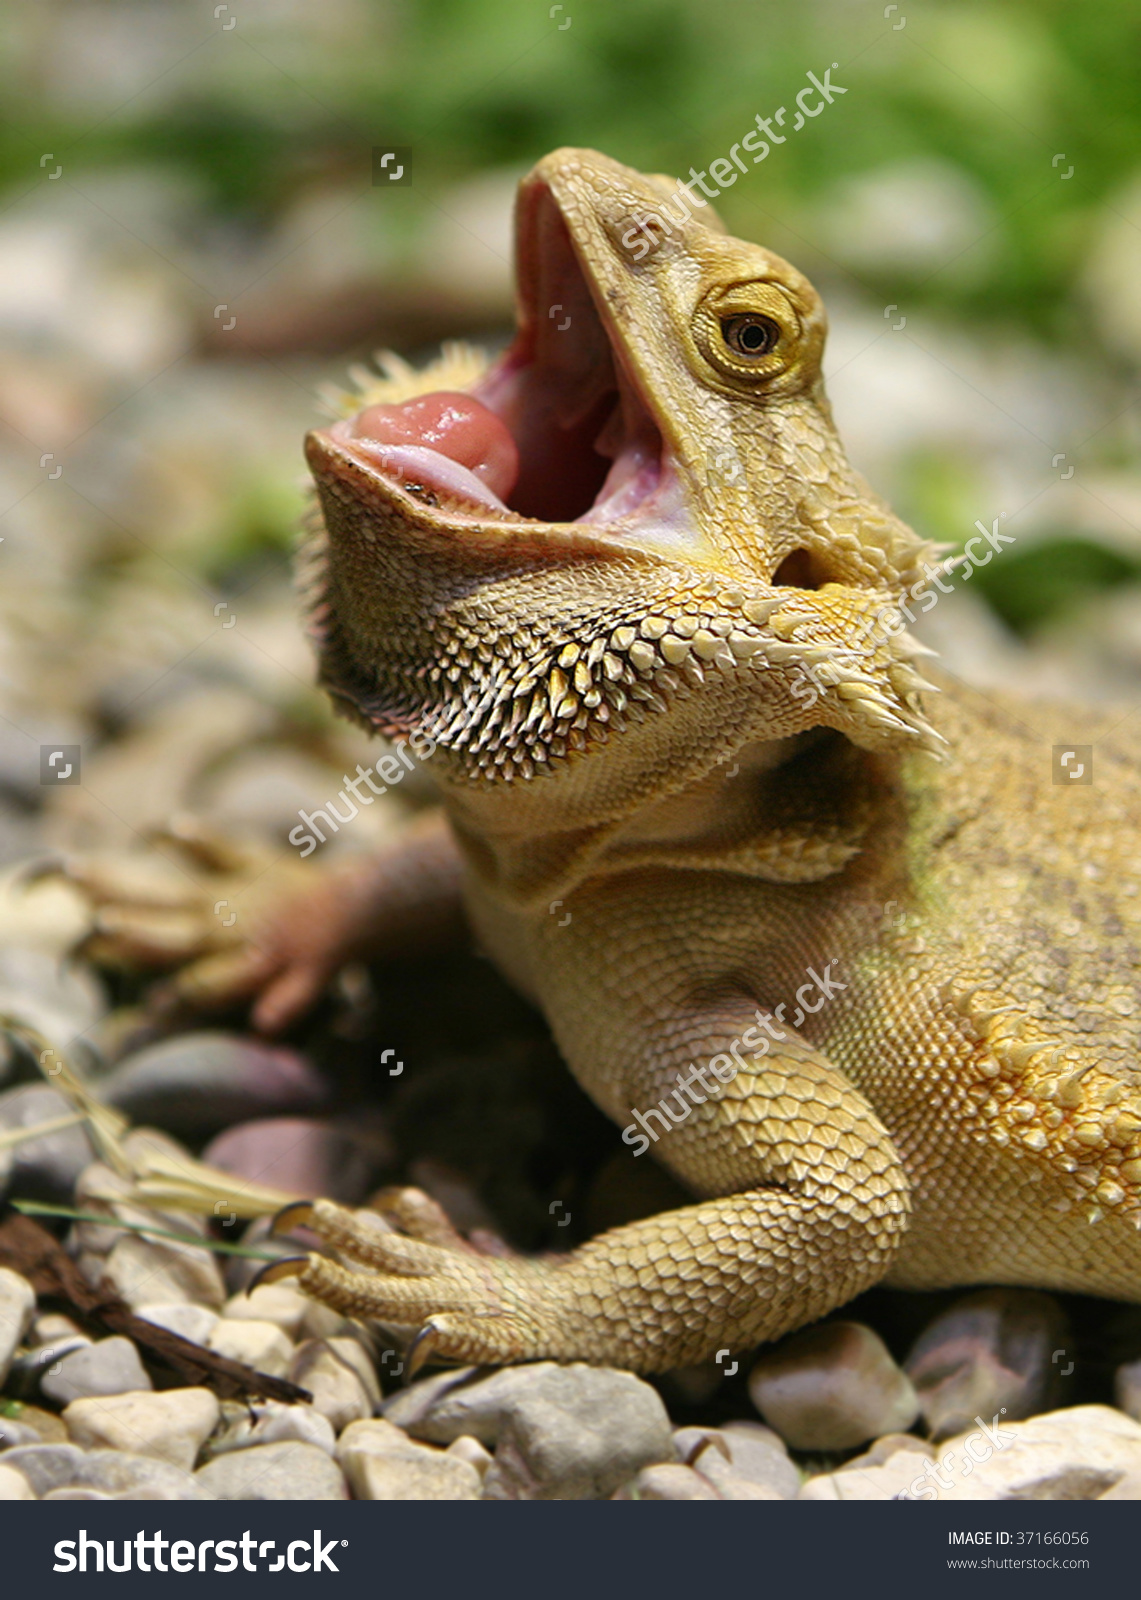 Bearded Dragon Opened Mouth Stock Photo 37166056.